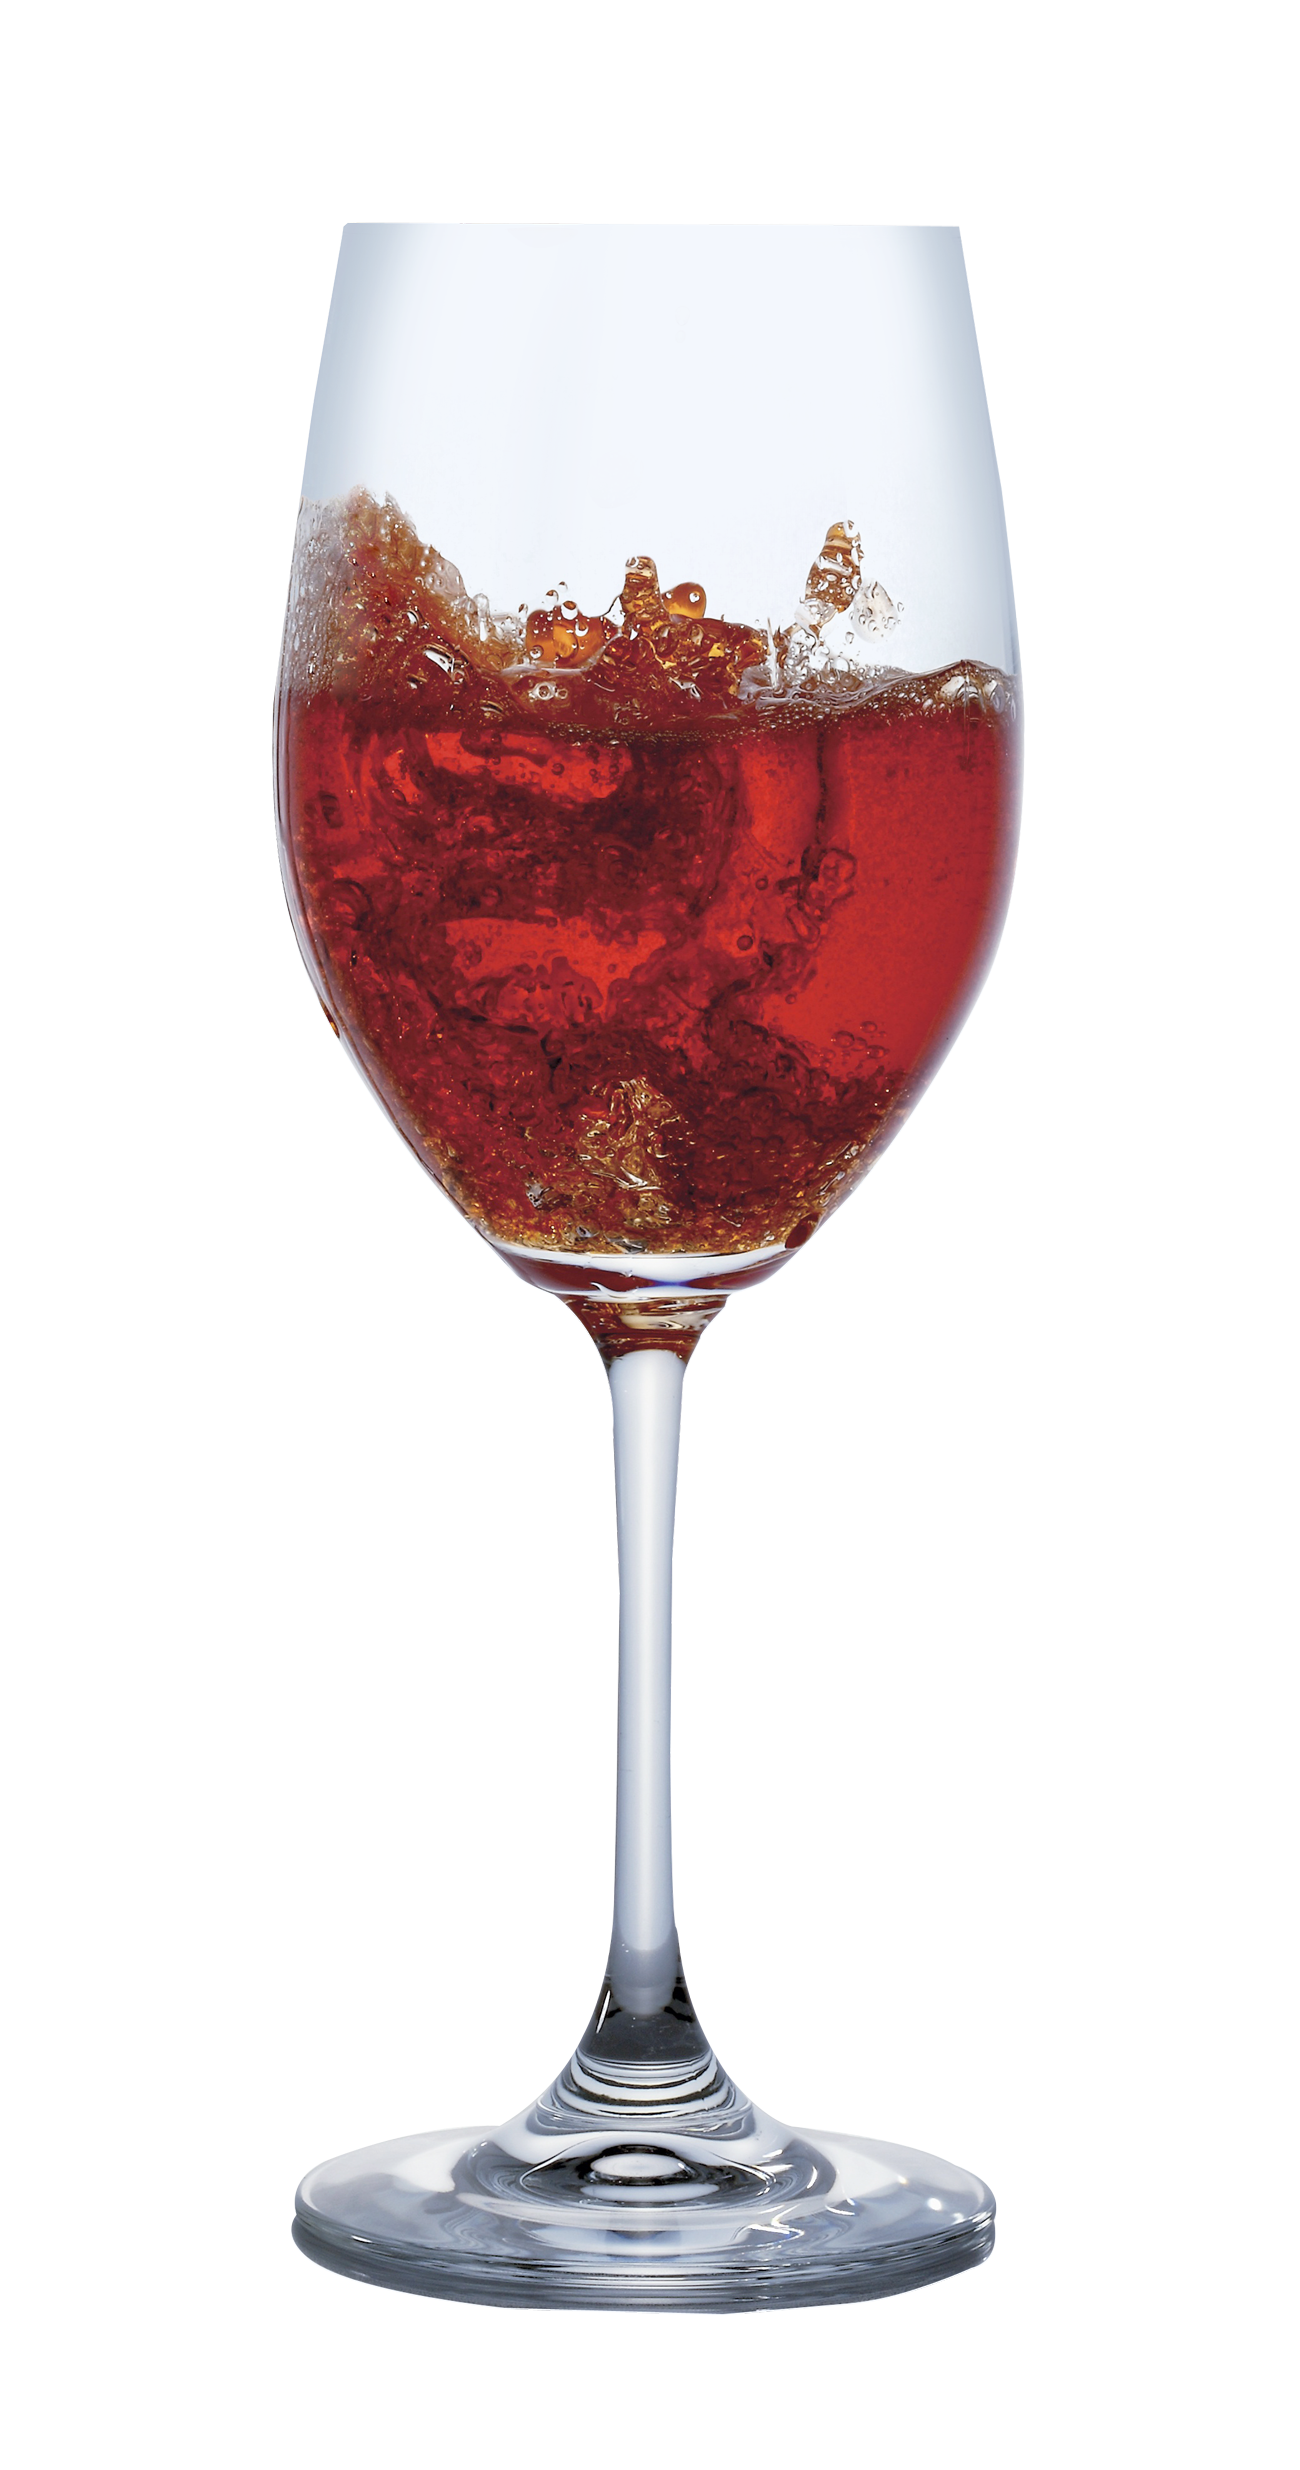 Cocktail clipart drinking glass. Png image purepng free